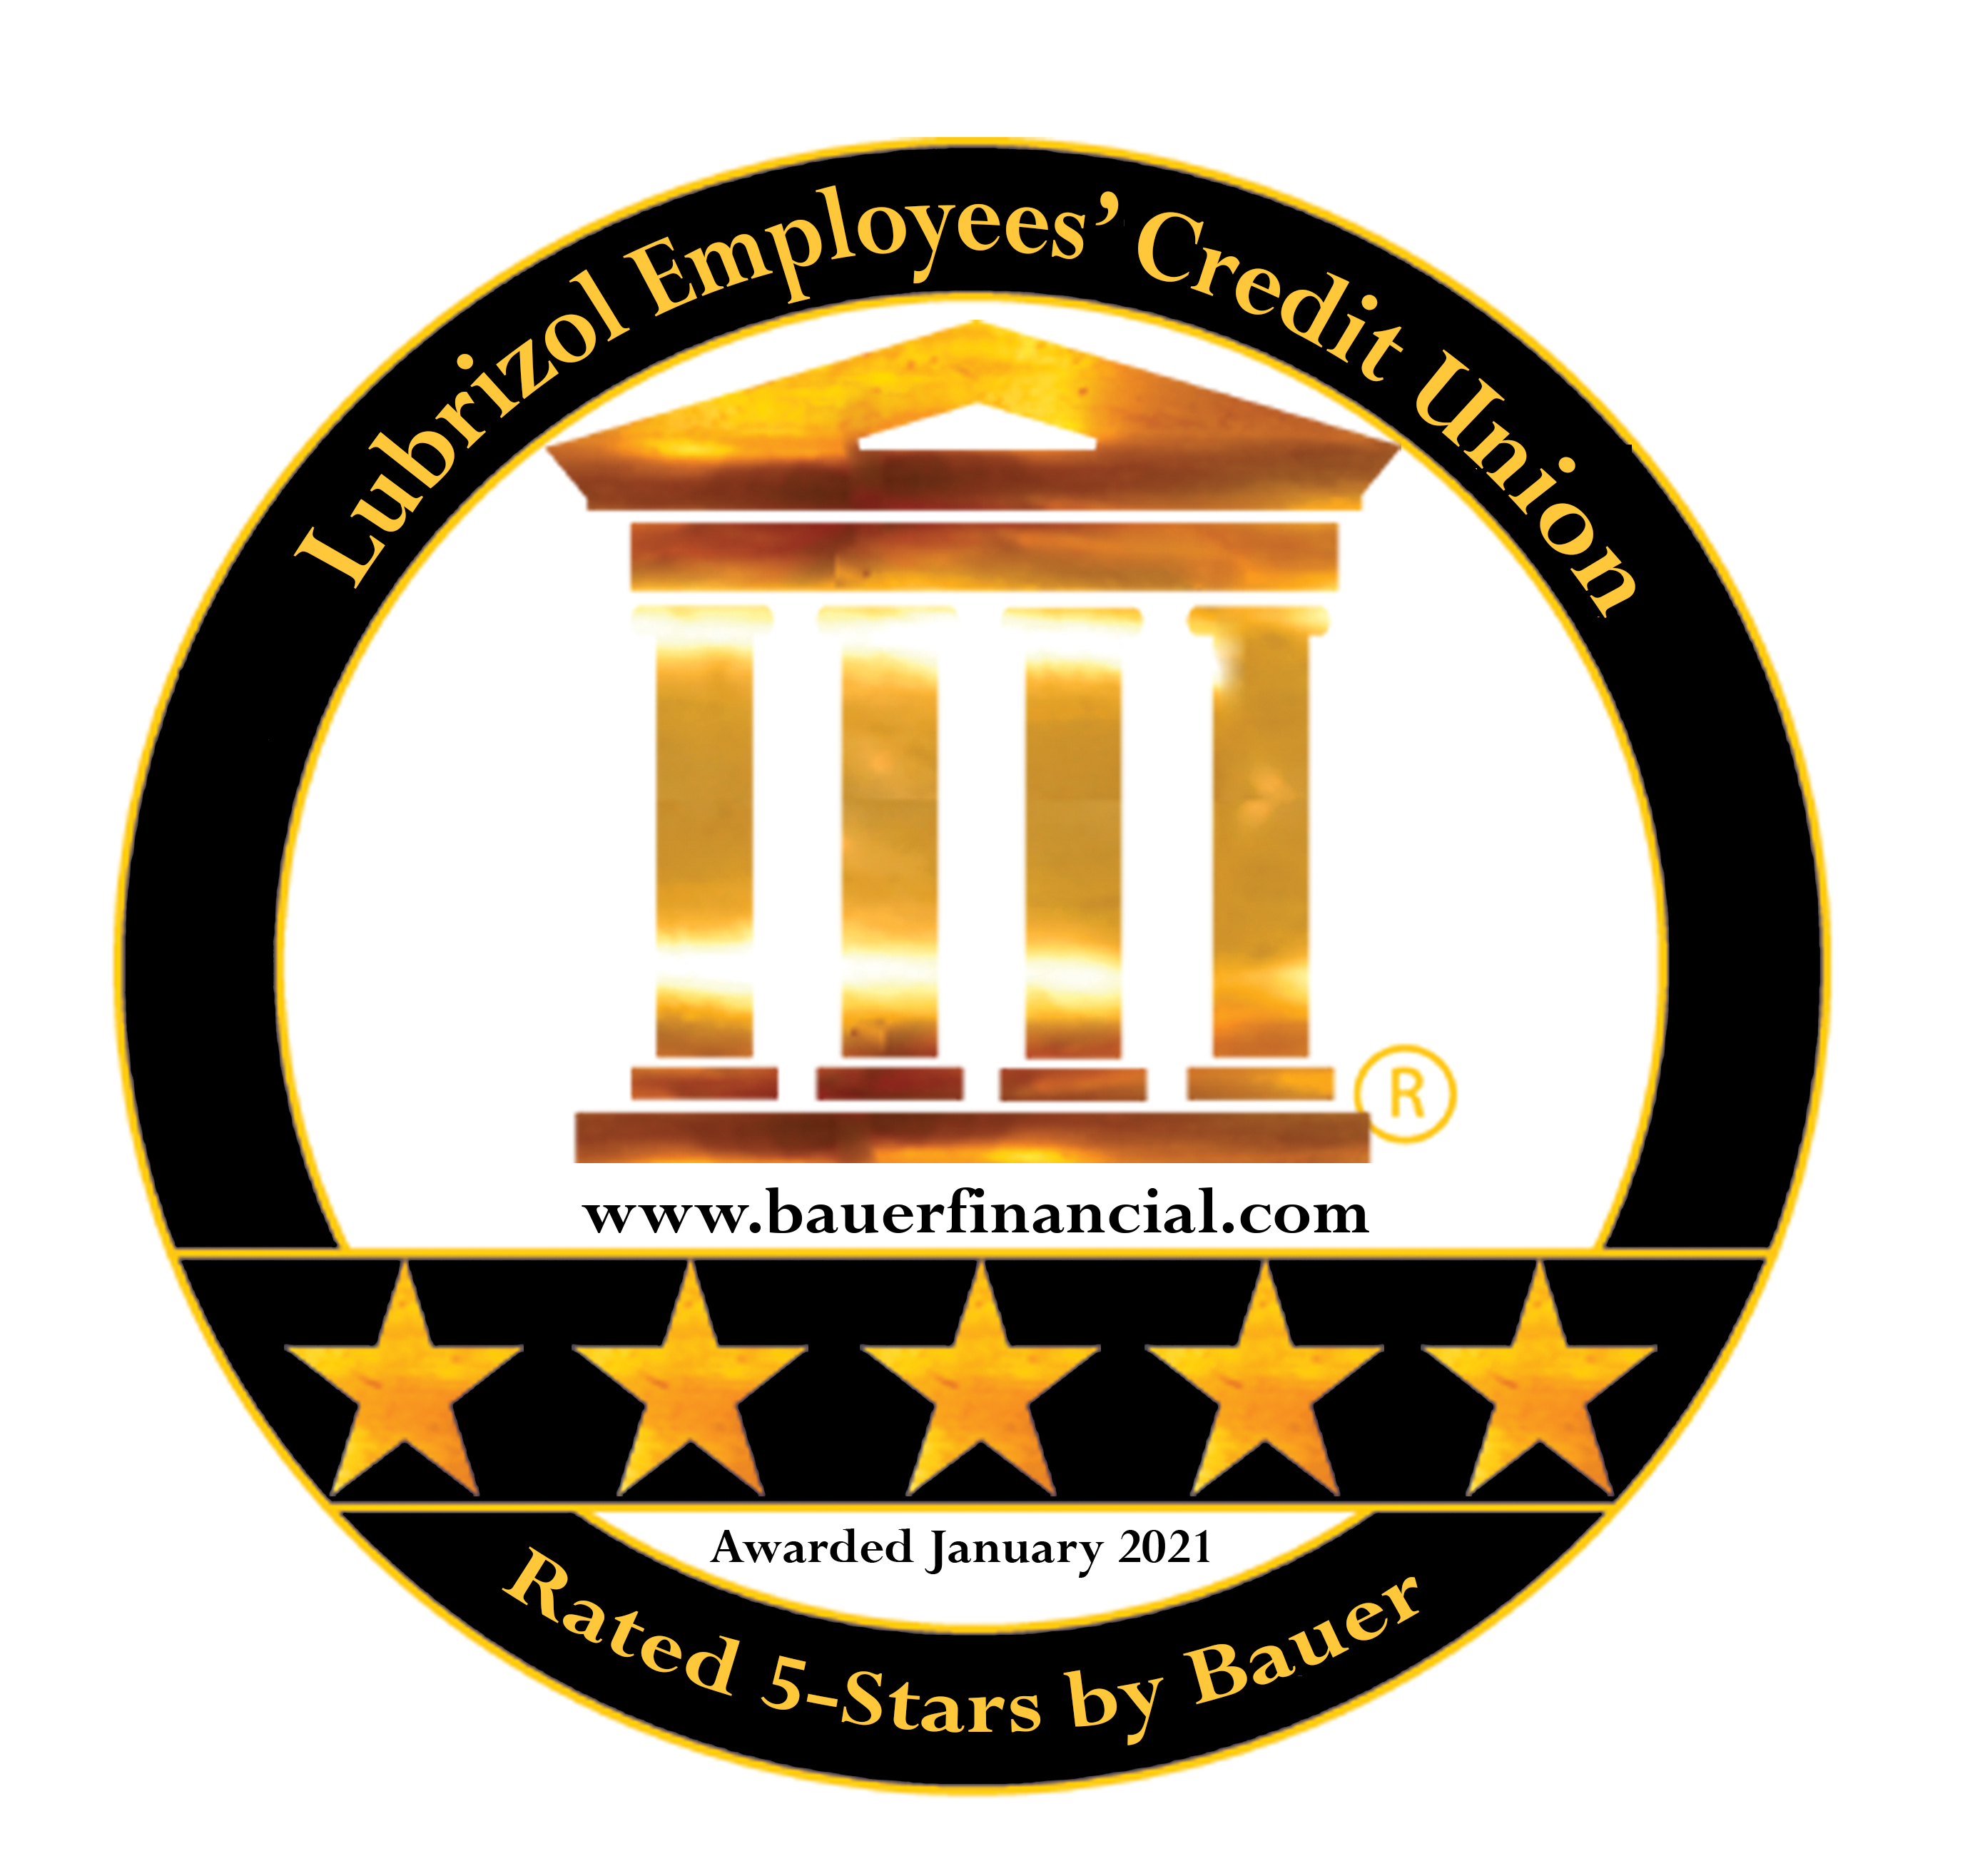 Bauer Financial 5 star rating awarded Jan 2021